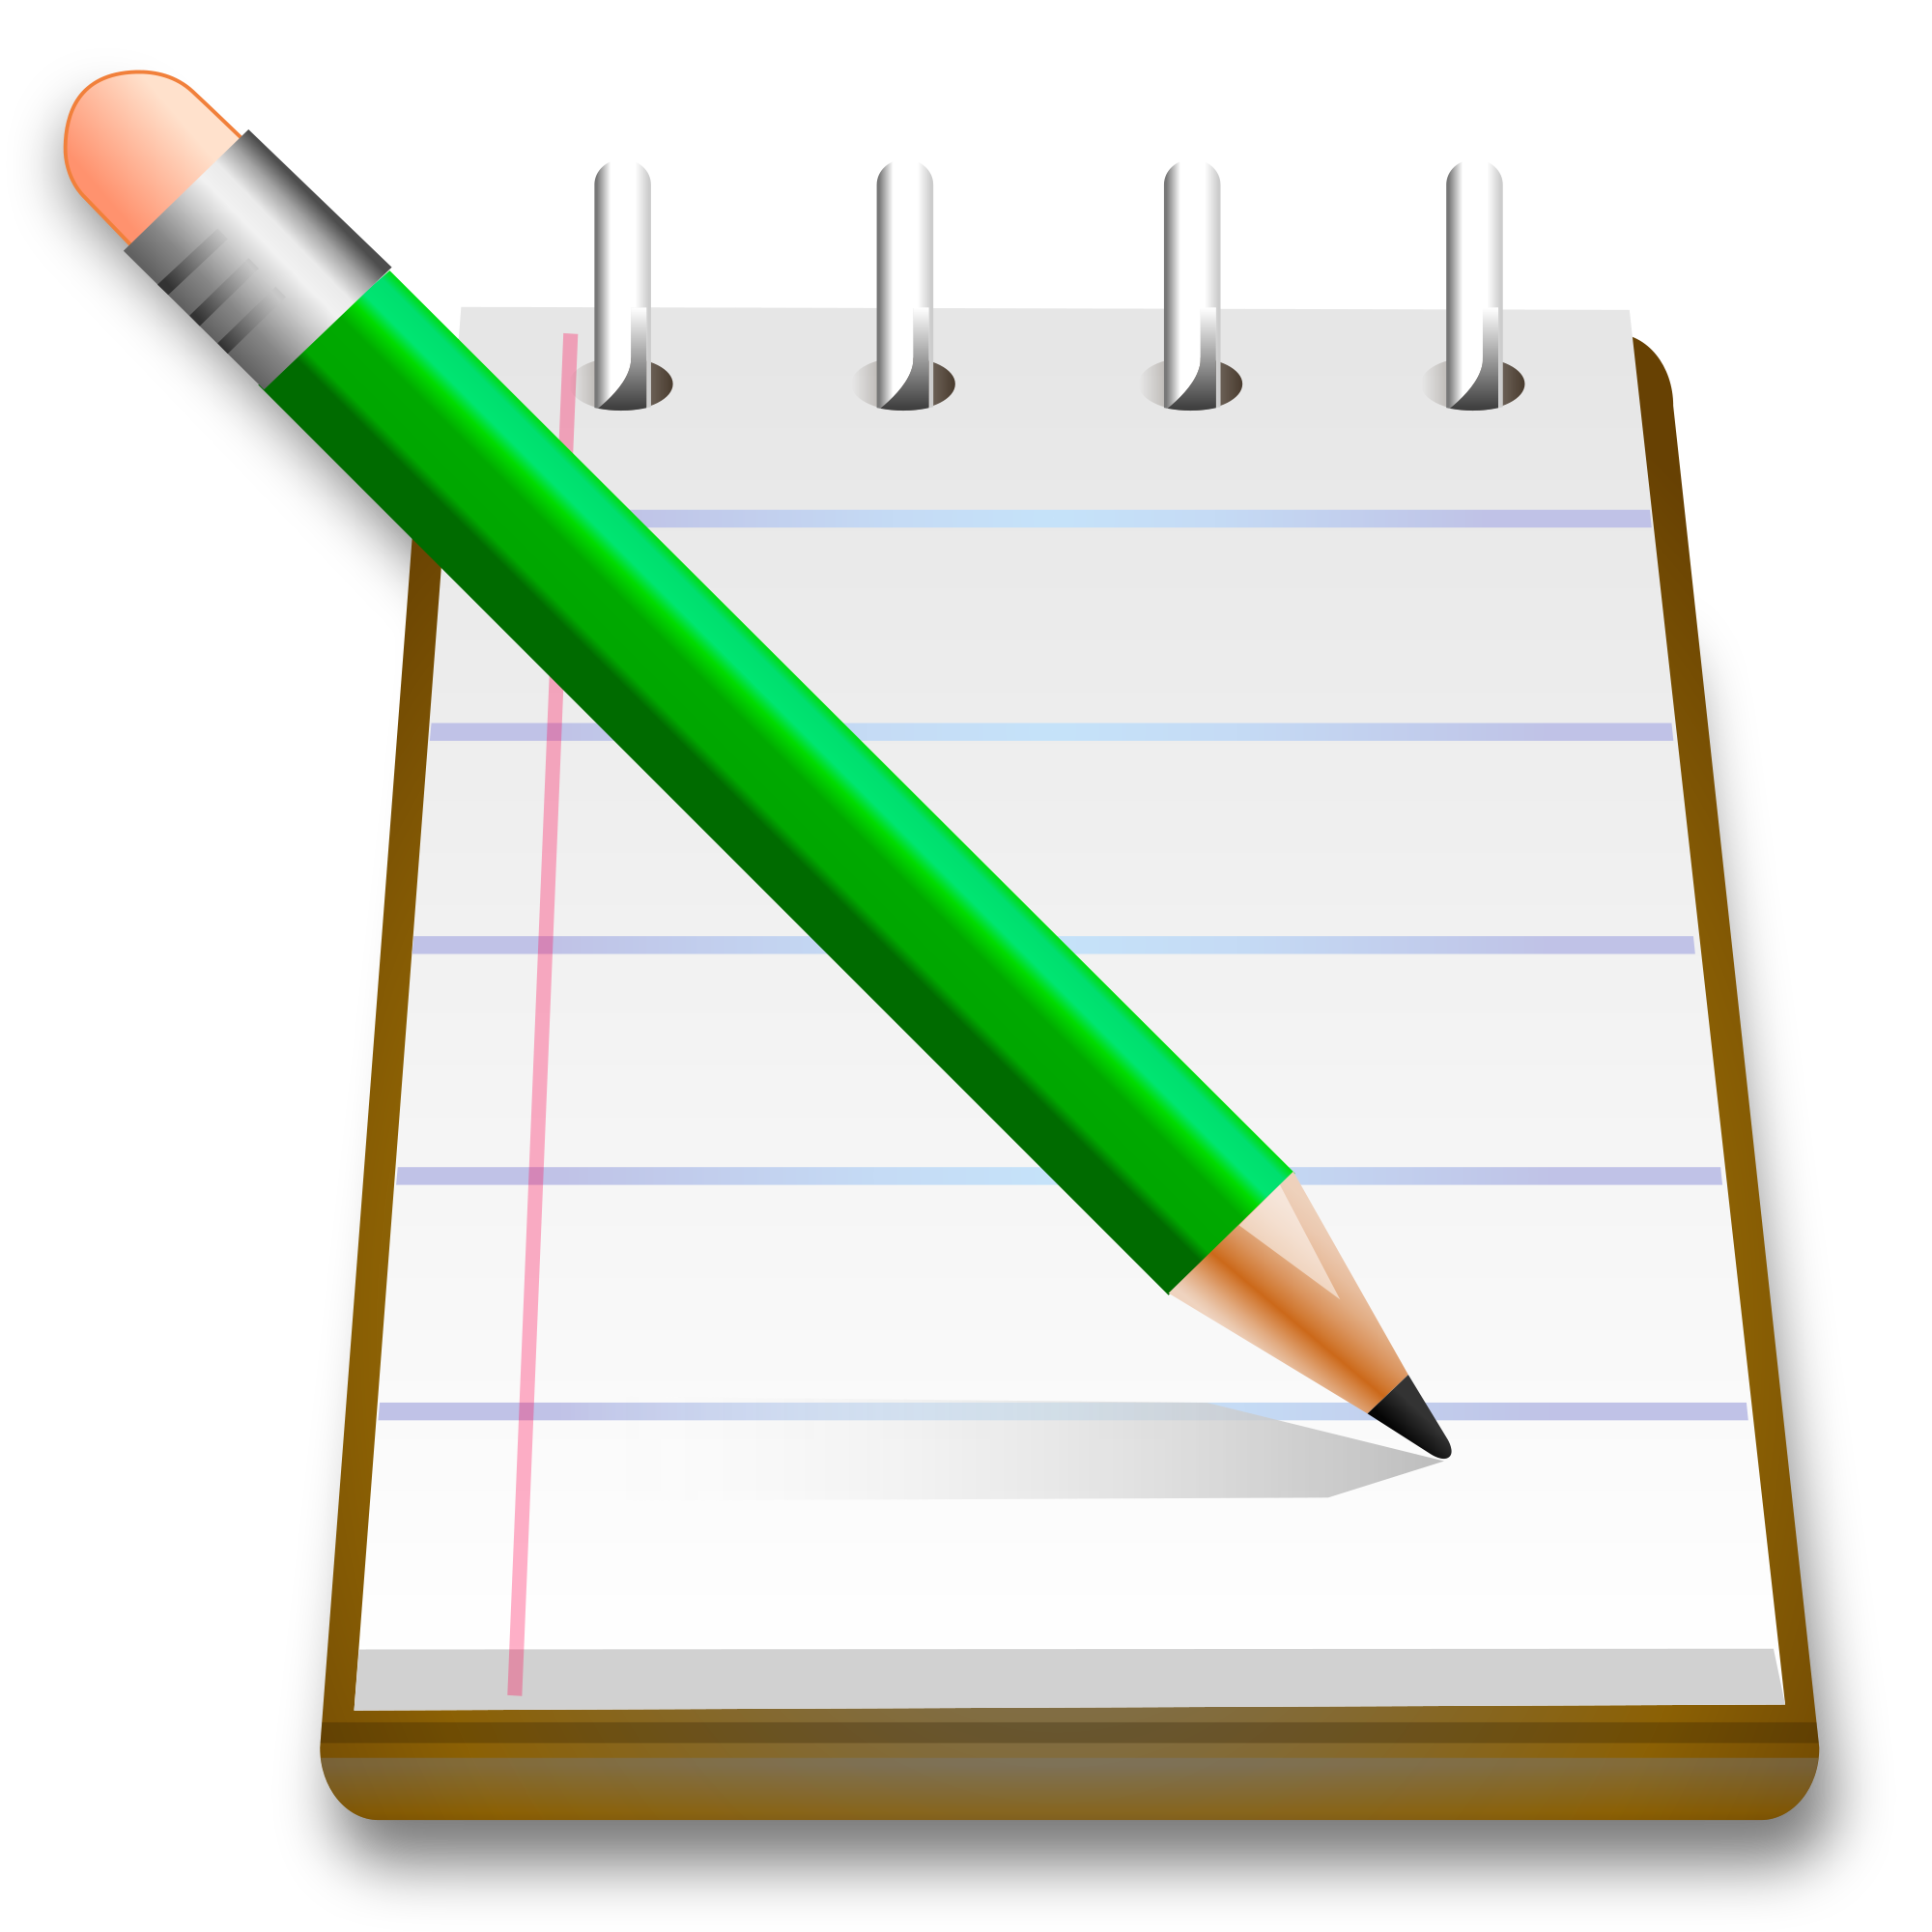 Notebook clipart pencil. File crystal clear app